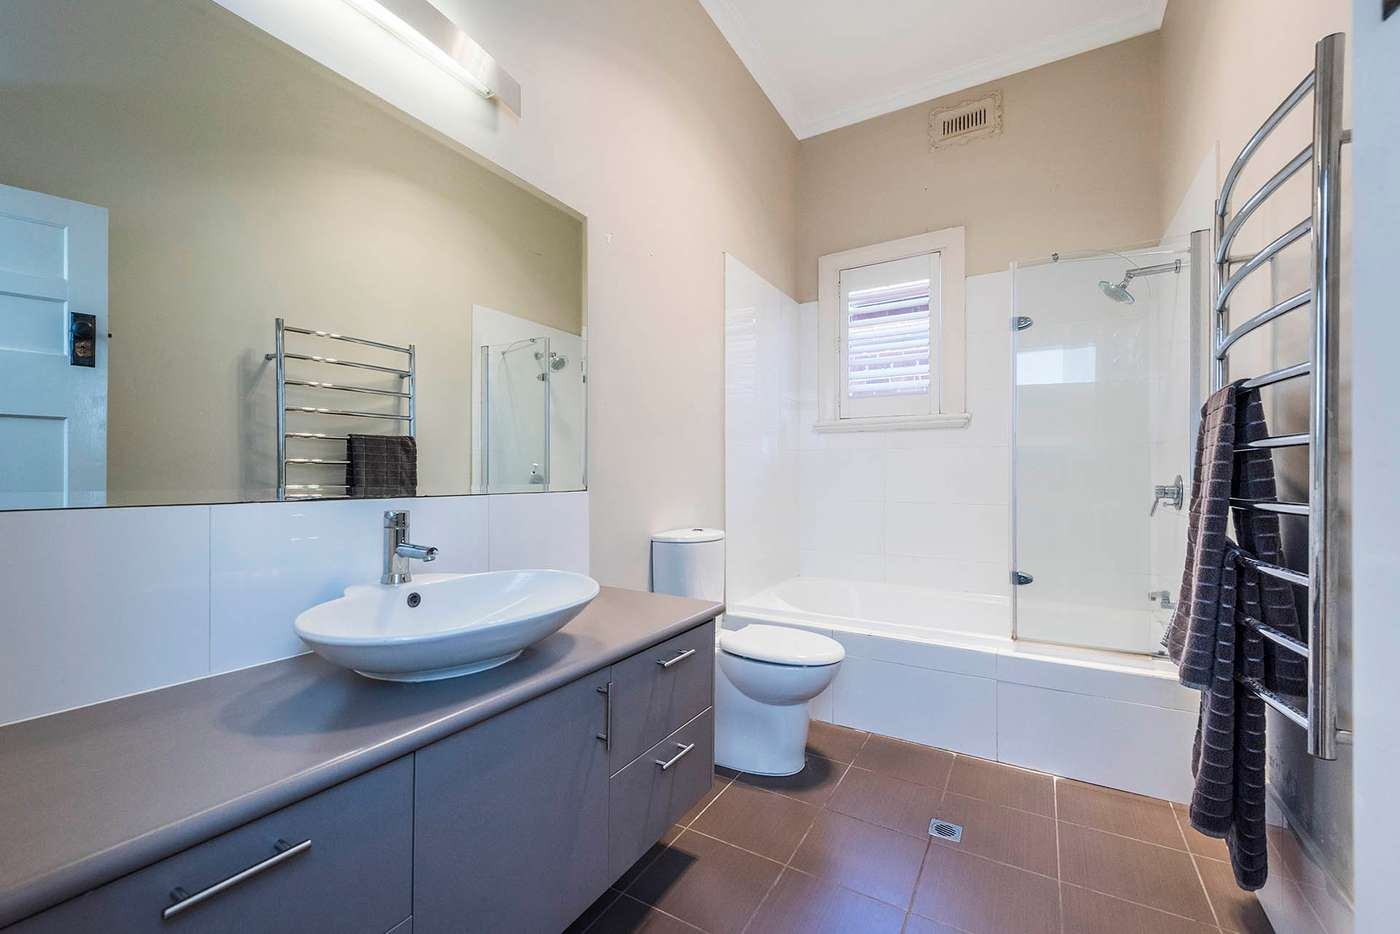 Seventh view of Homely house listing, 42 ELIZABETH STREET, North Perth WA 6006